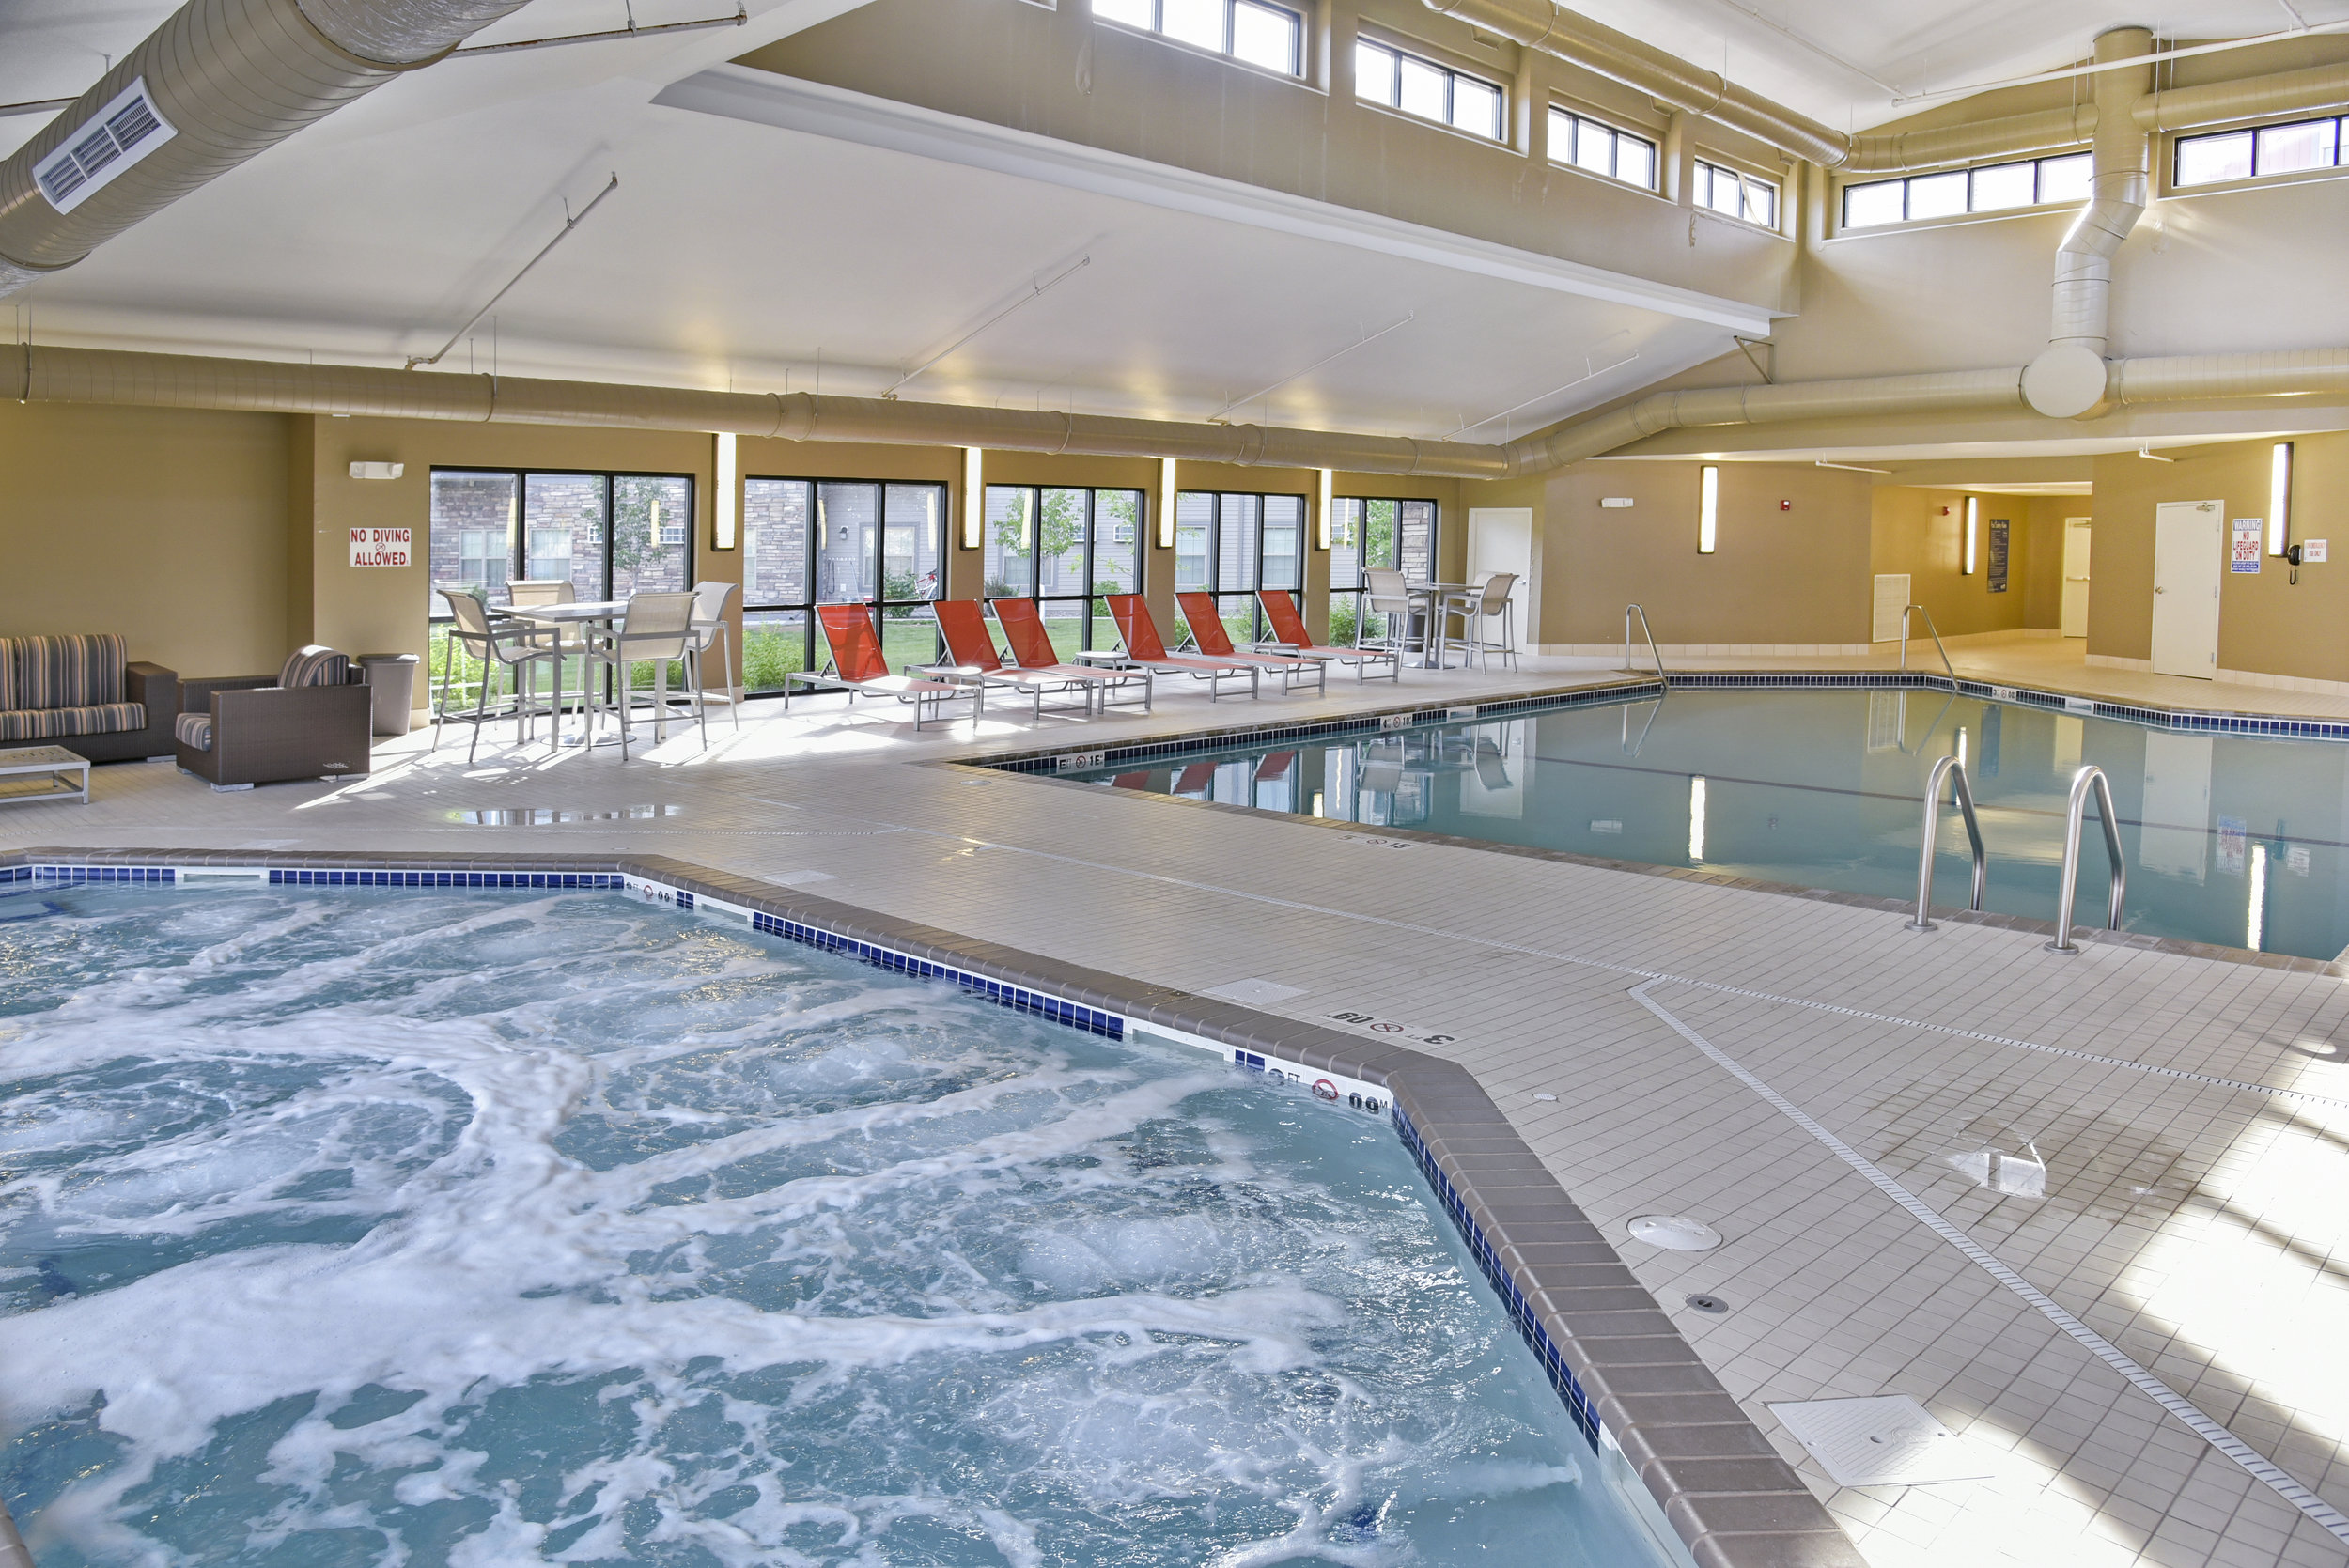 08 Ease Away the Stress of the Day with the Indoor Hot Tub.jpg